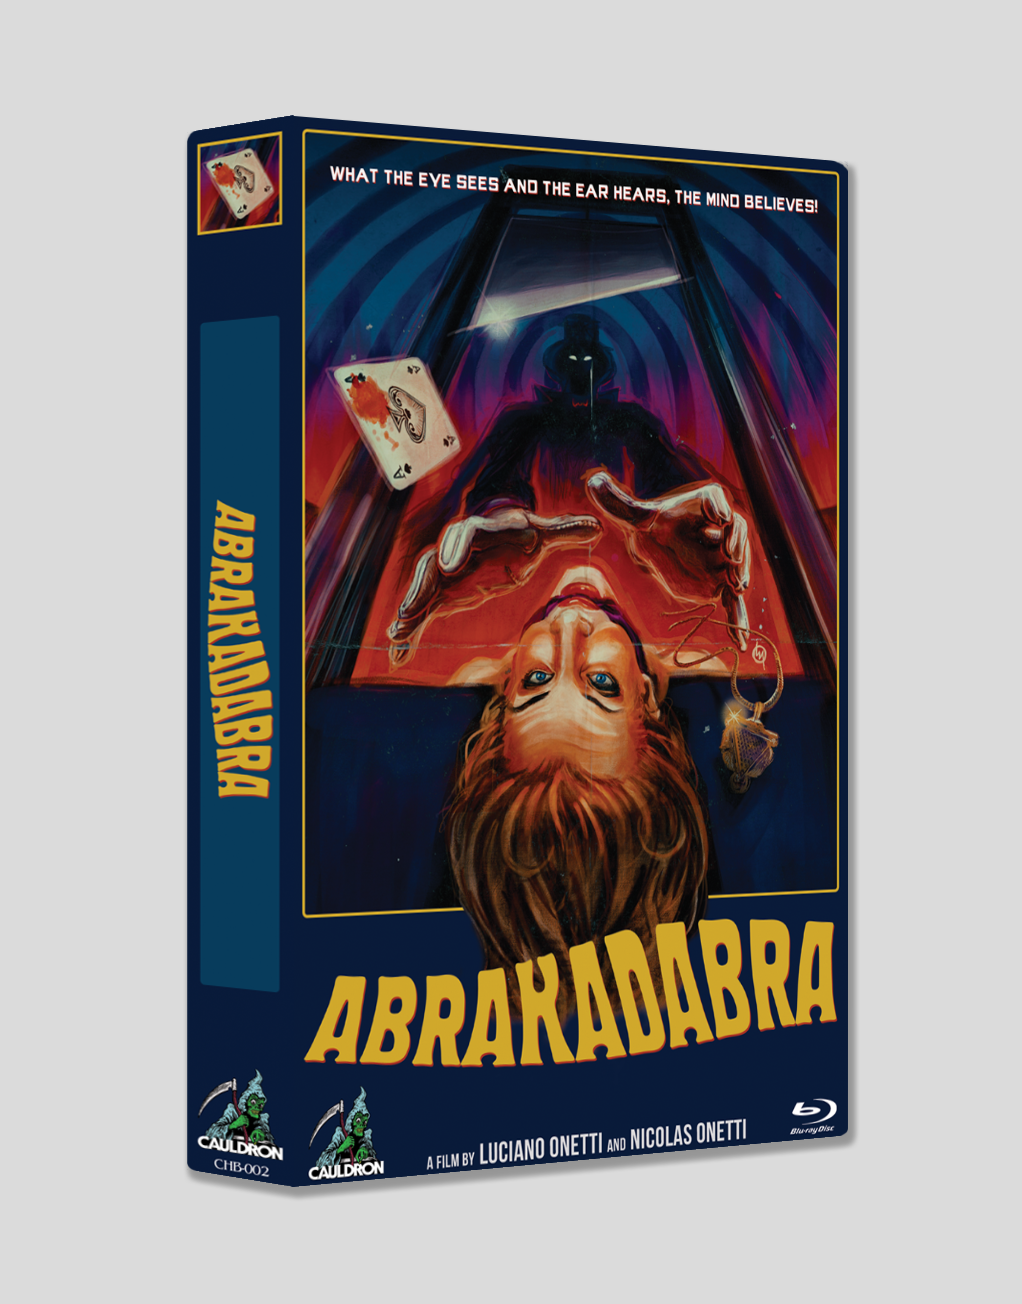 Abrakadabra (Limited Hardbox Blu-ray / CD)